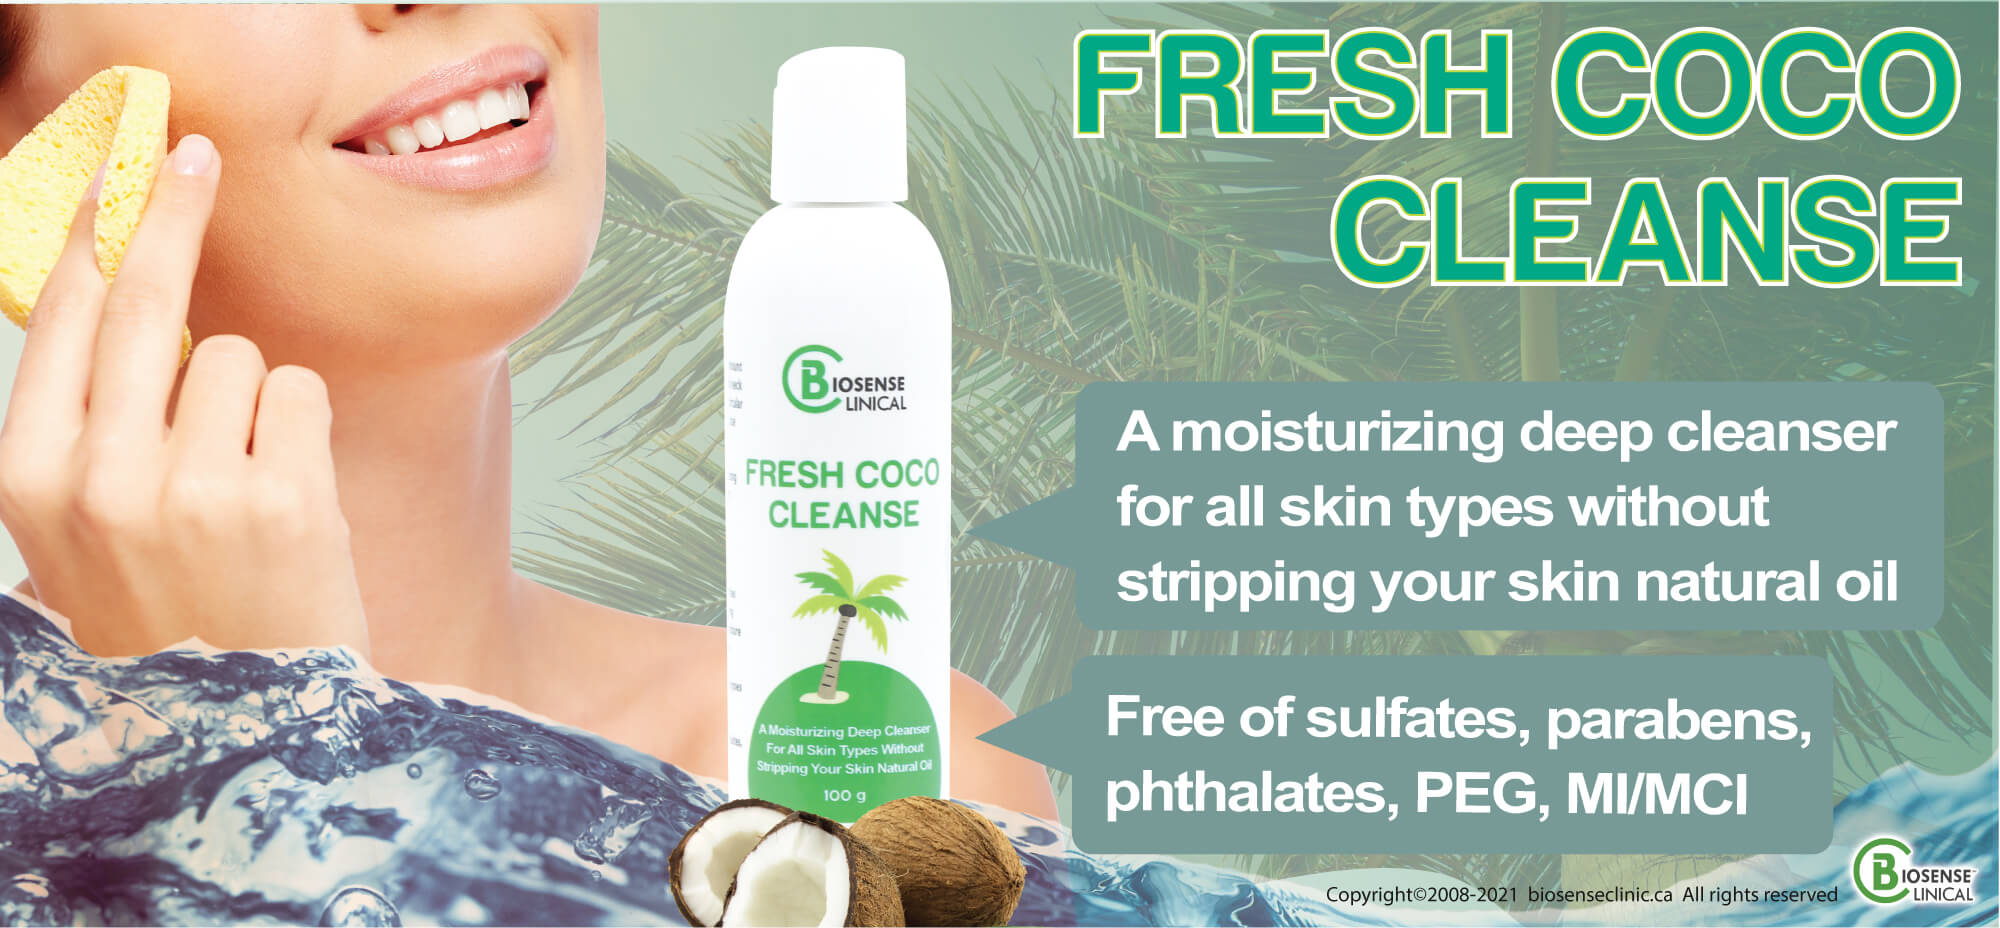 BiosenseClinical Professional Custom Compound Fresh Coco Cleanser product banner